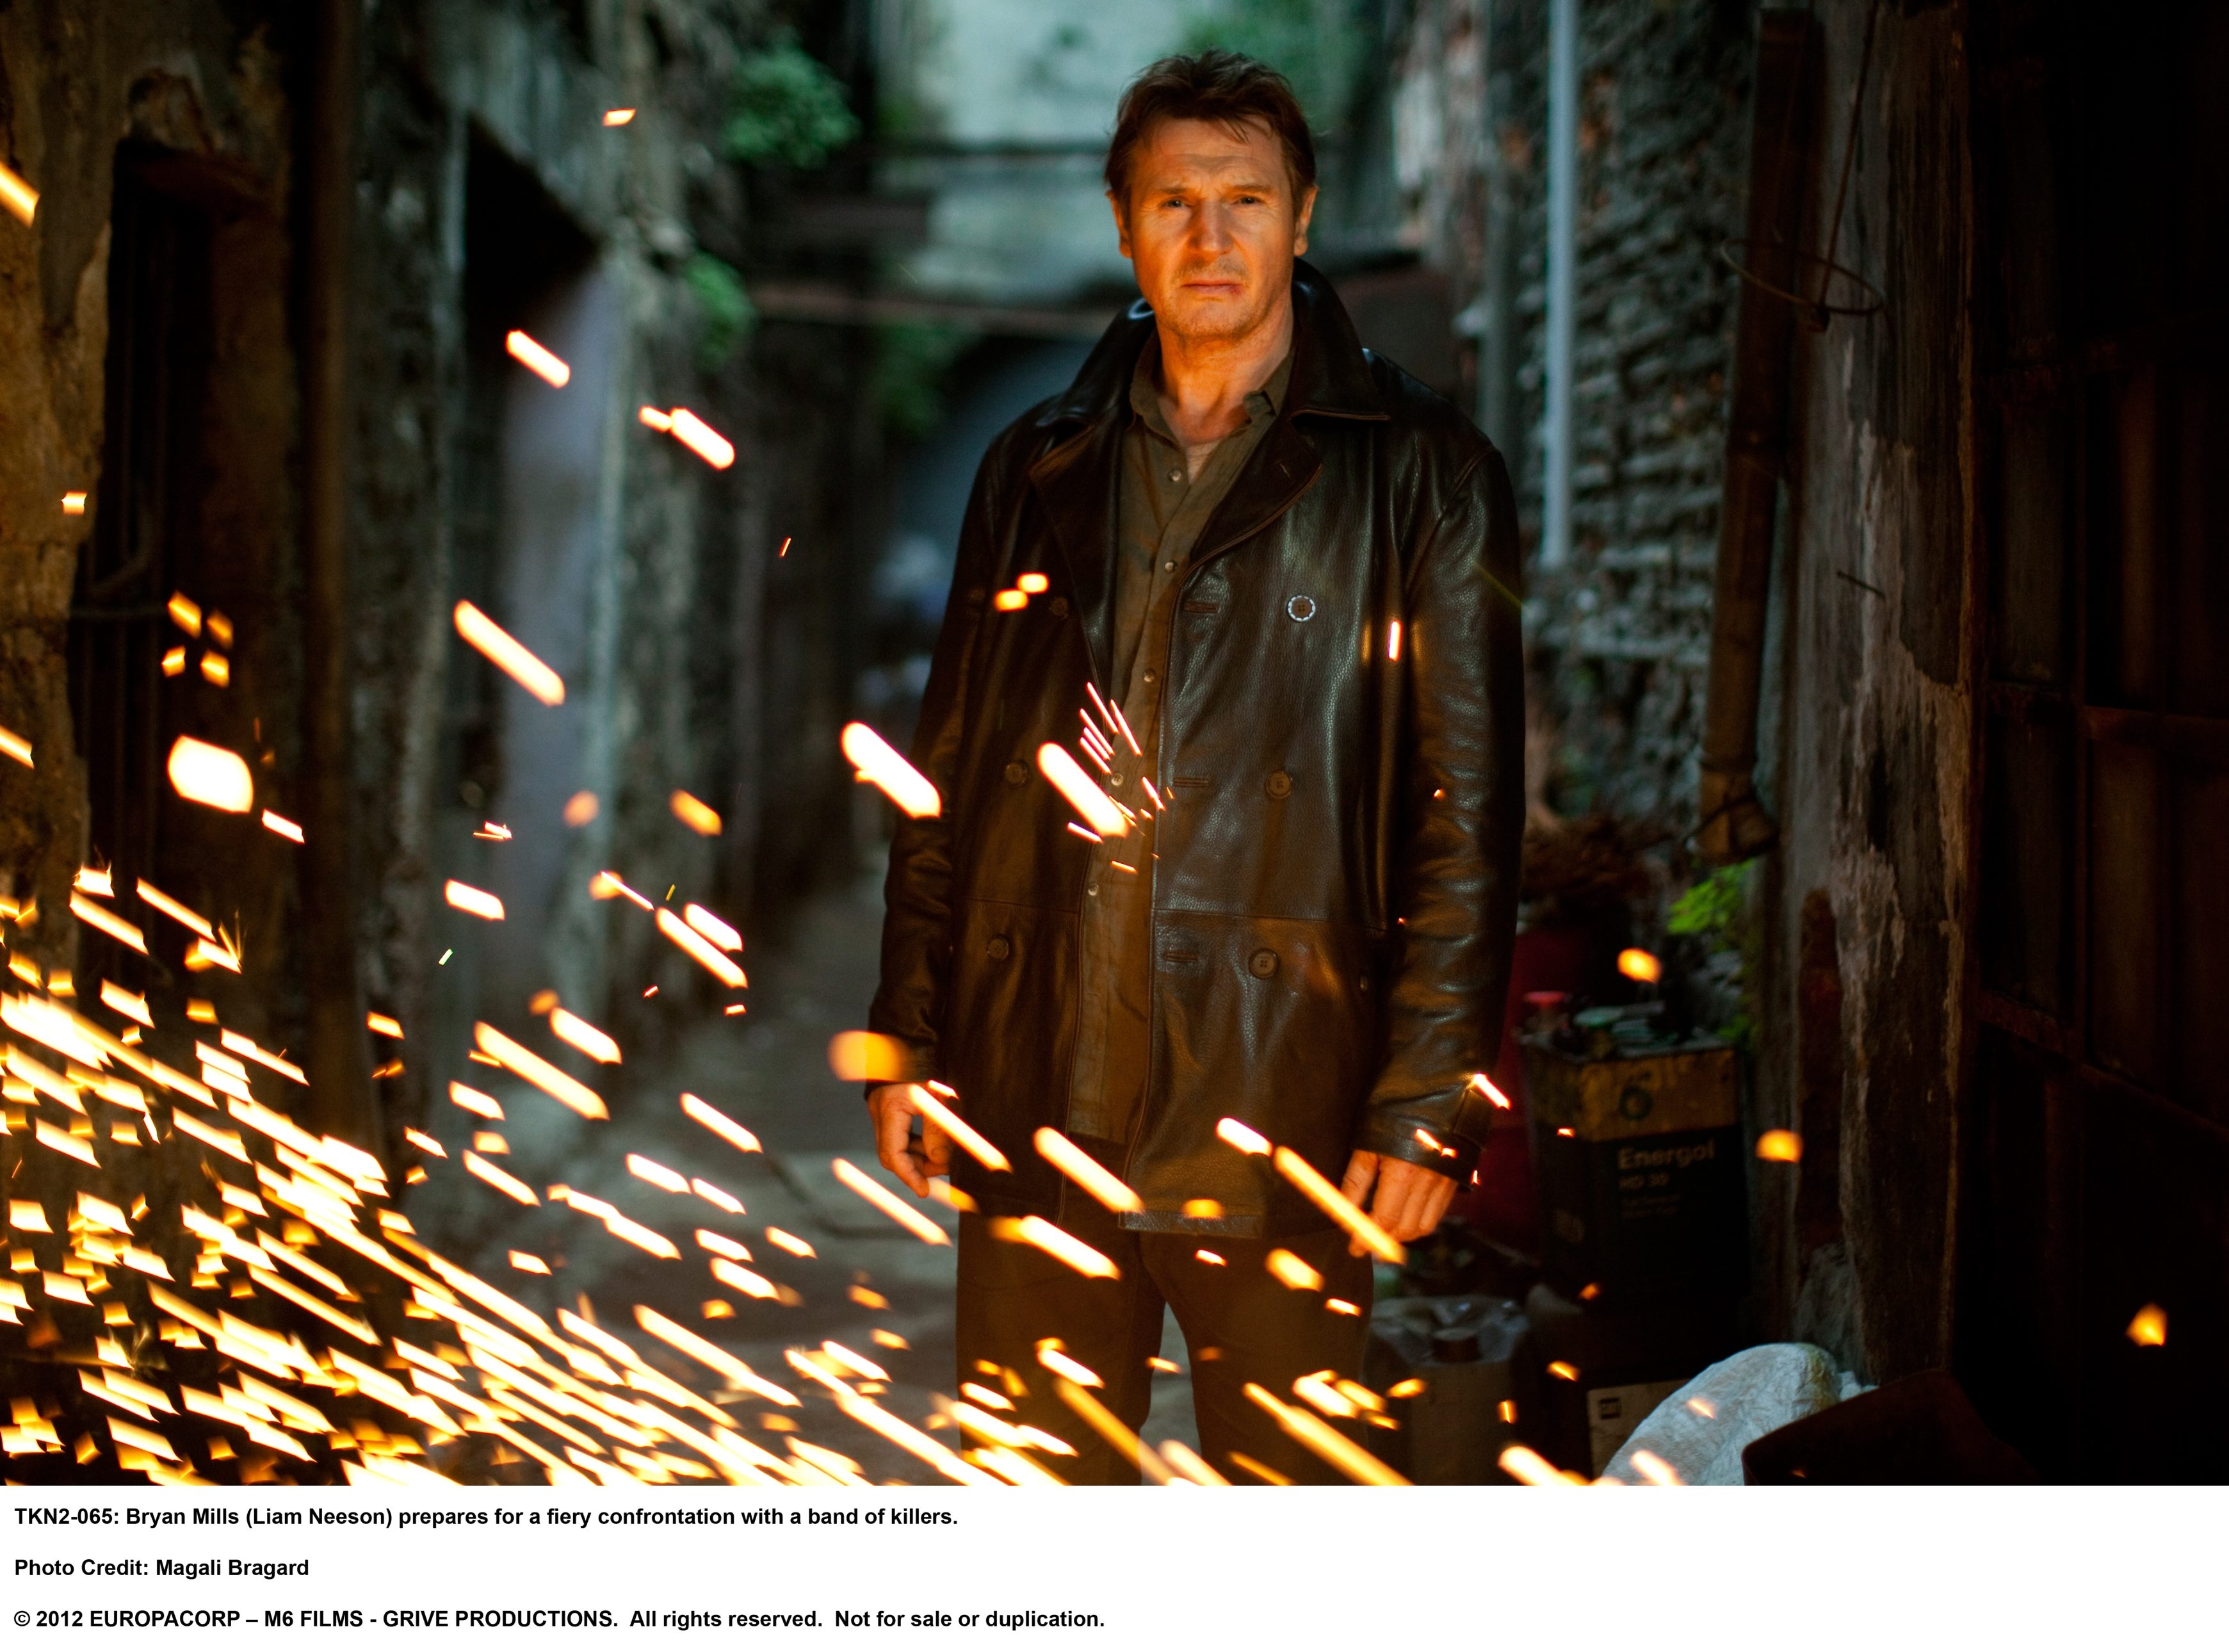 Liam Neeson reprises his role as Bryan Mills.